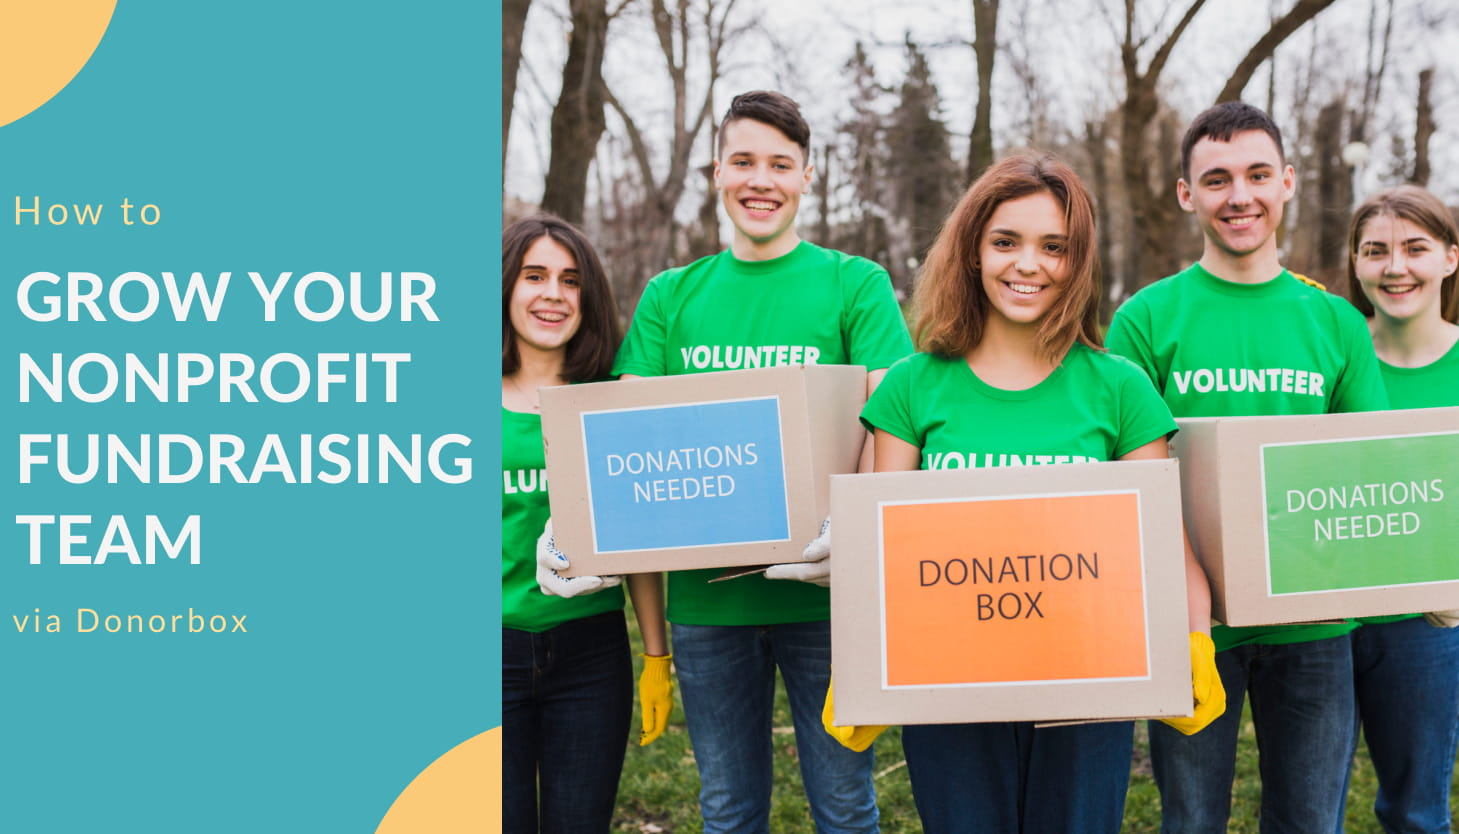 How to Grow Your Nonprofit Fundraising Team